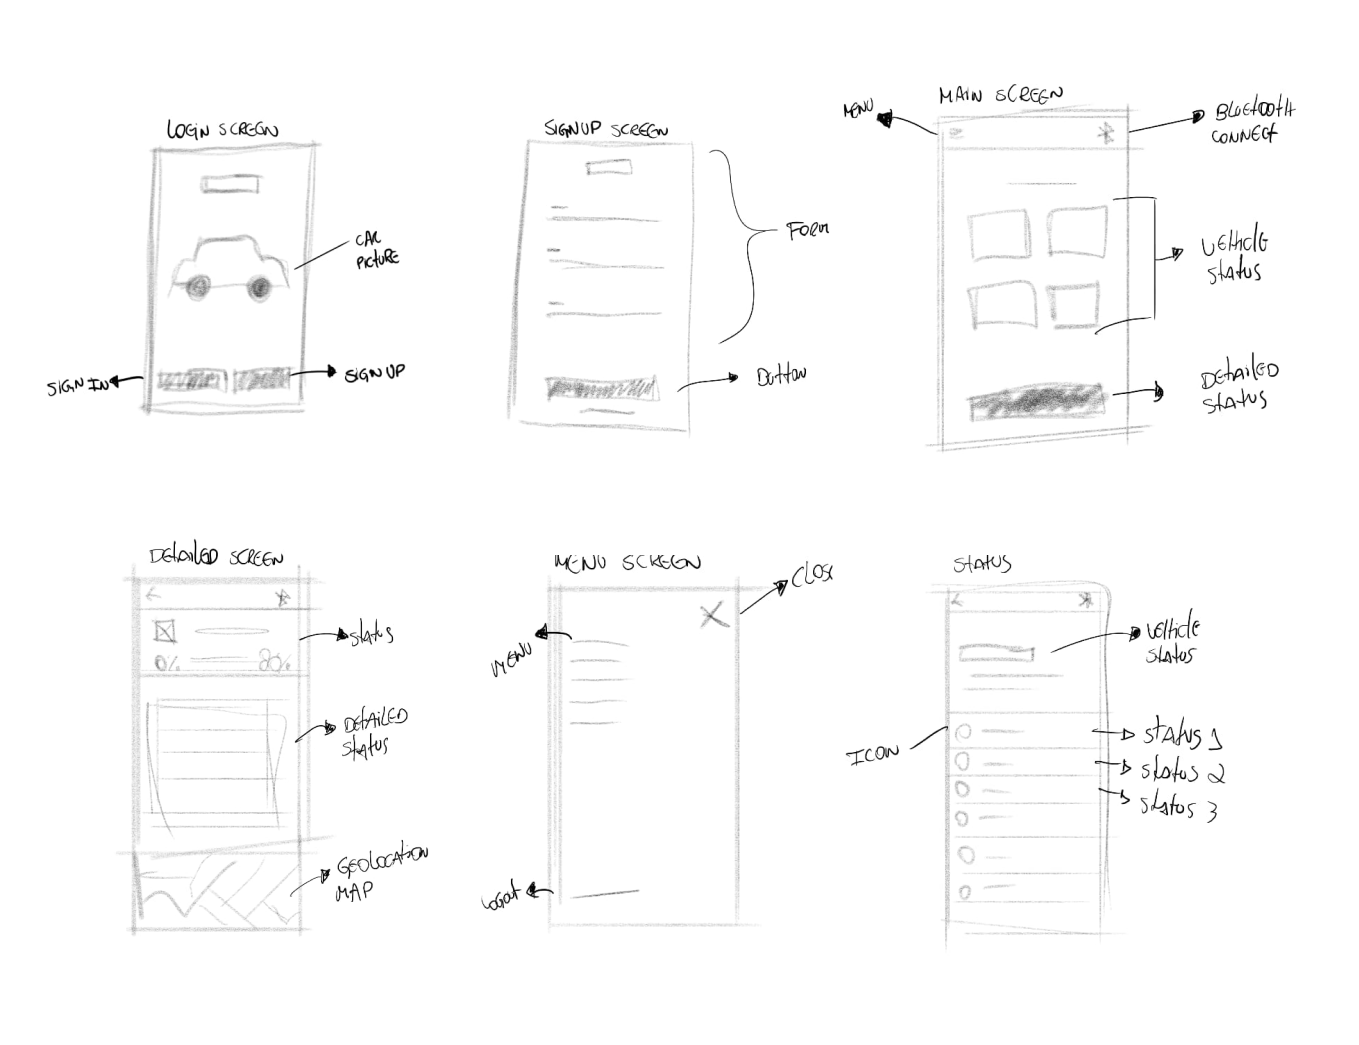 wireframes-1